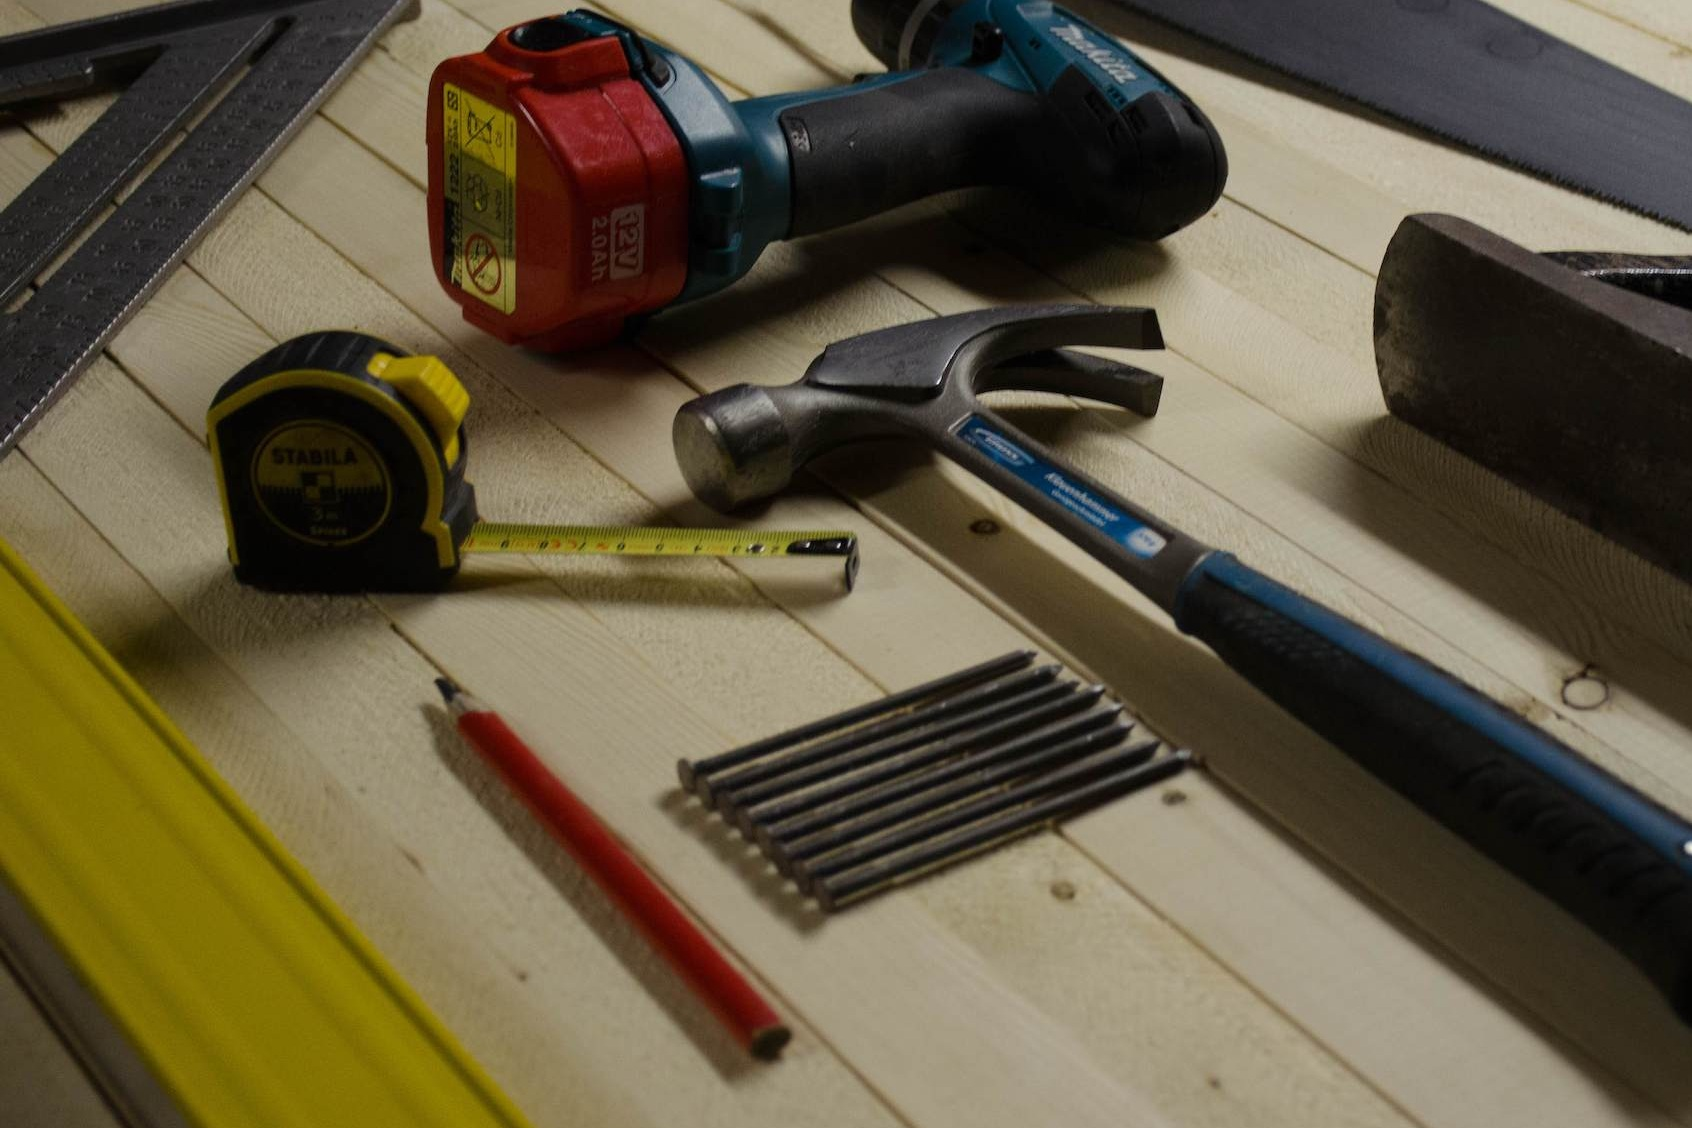 Leave it to the (tools that) pros (use) -